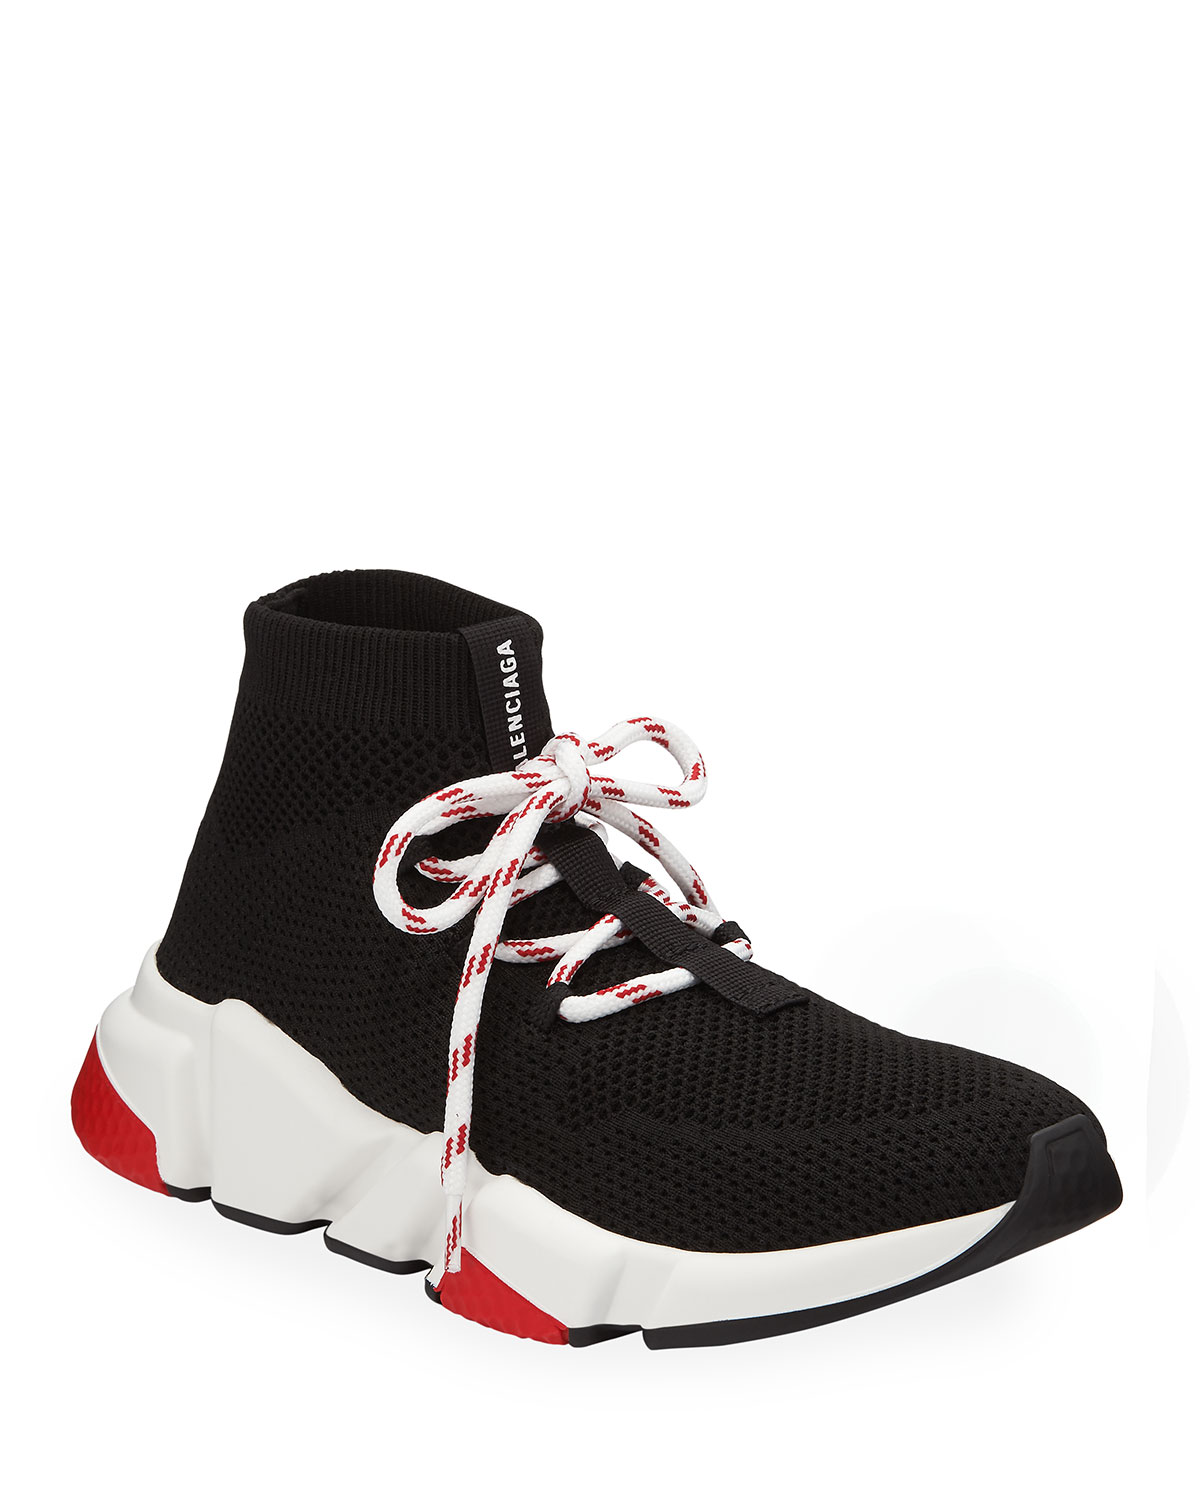 66edcde1bf3 Knit Lace-Up Speed Sneakers